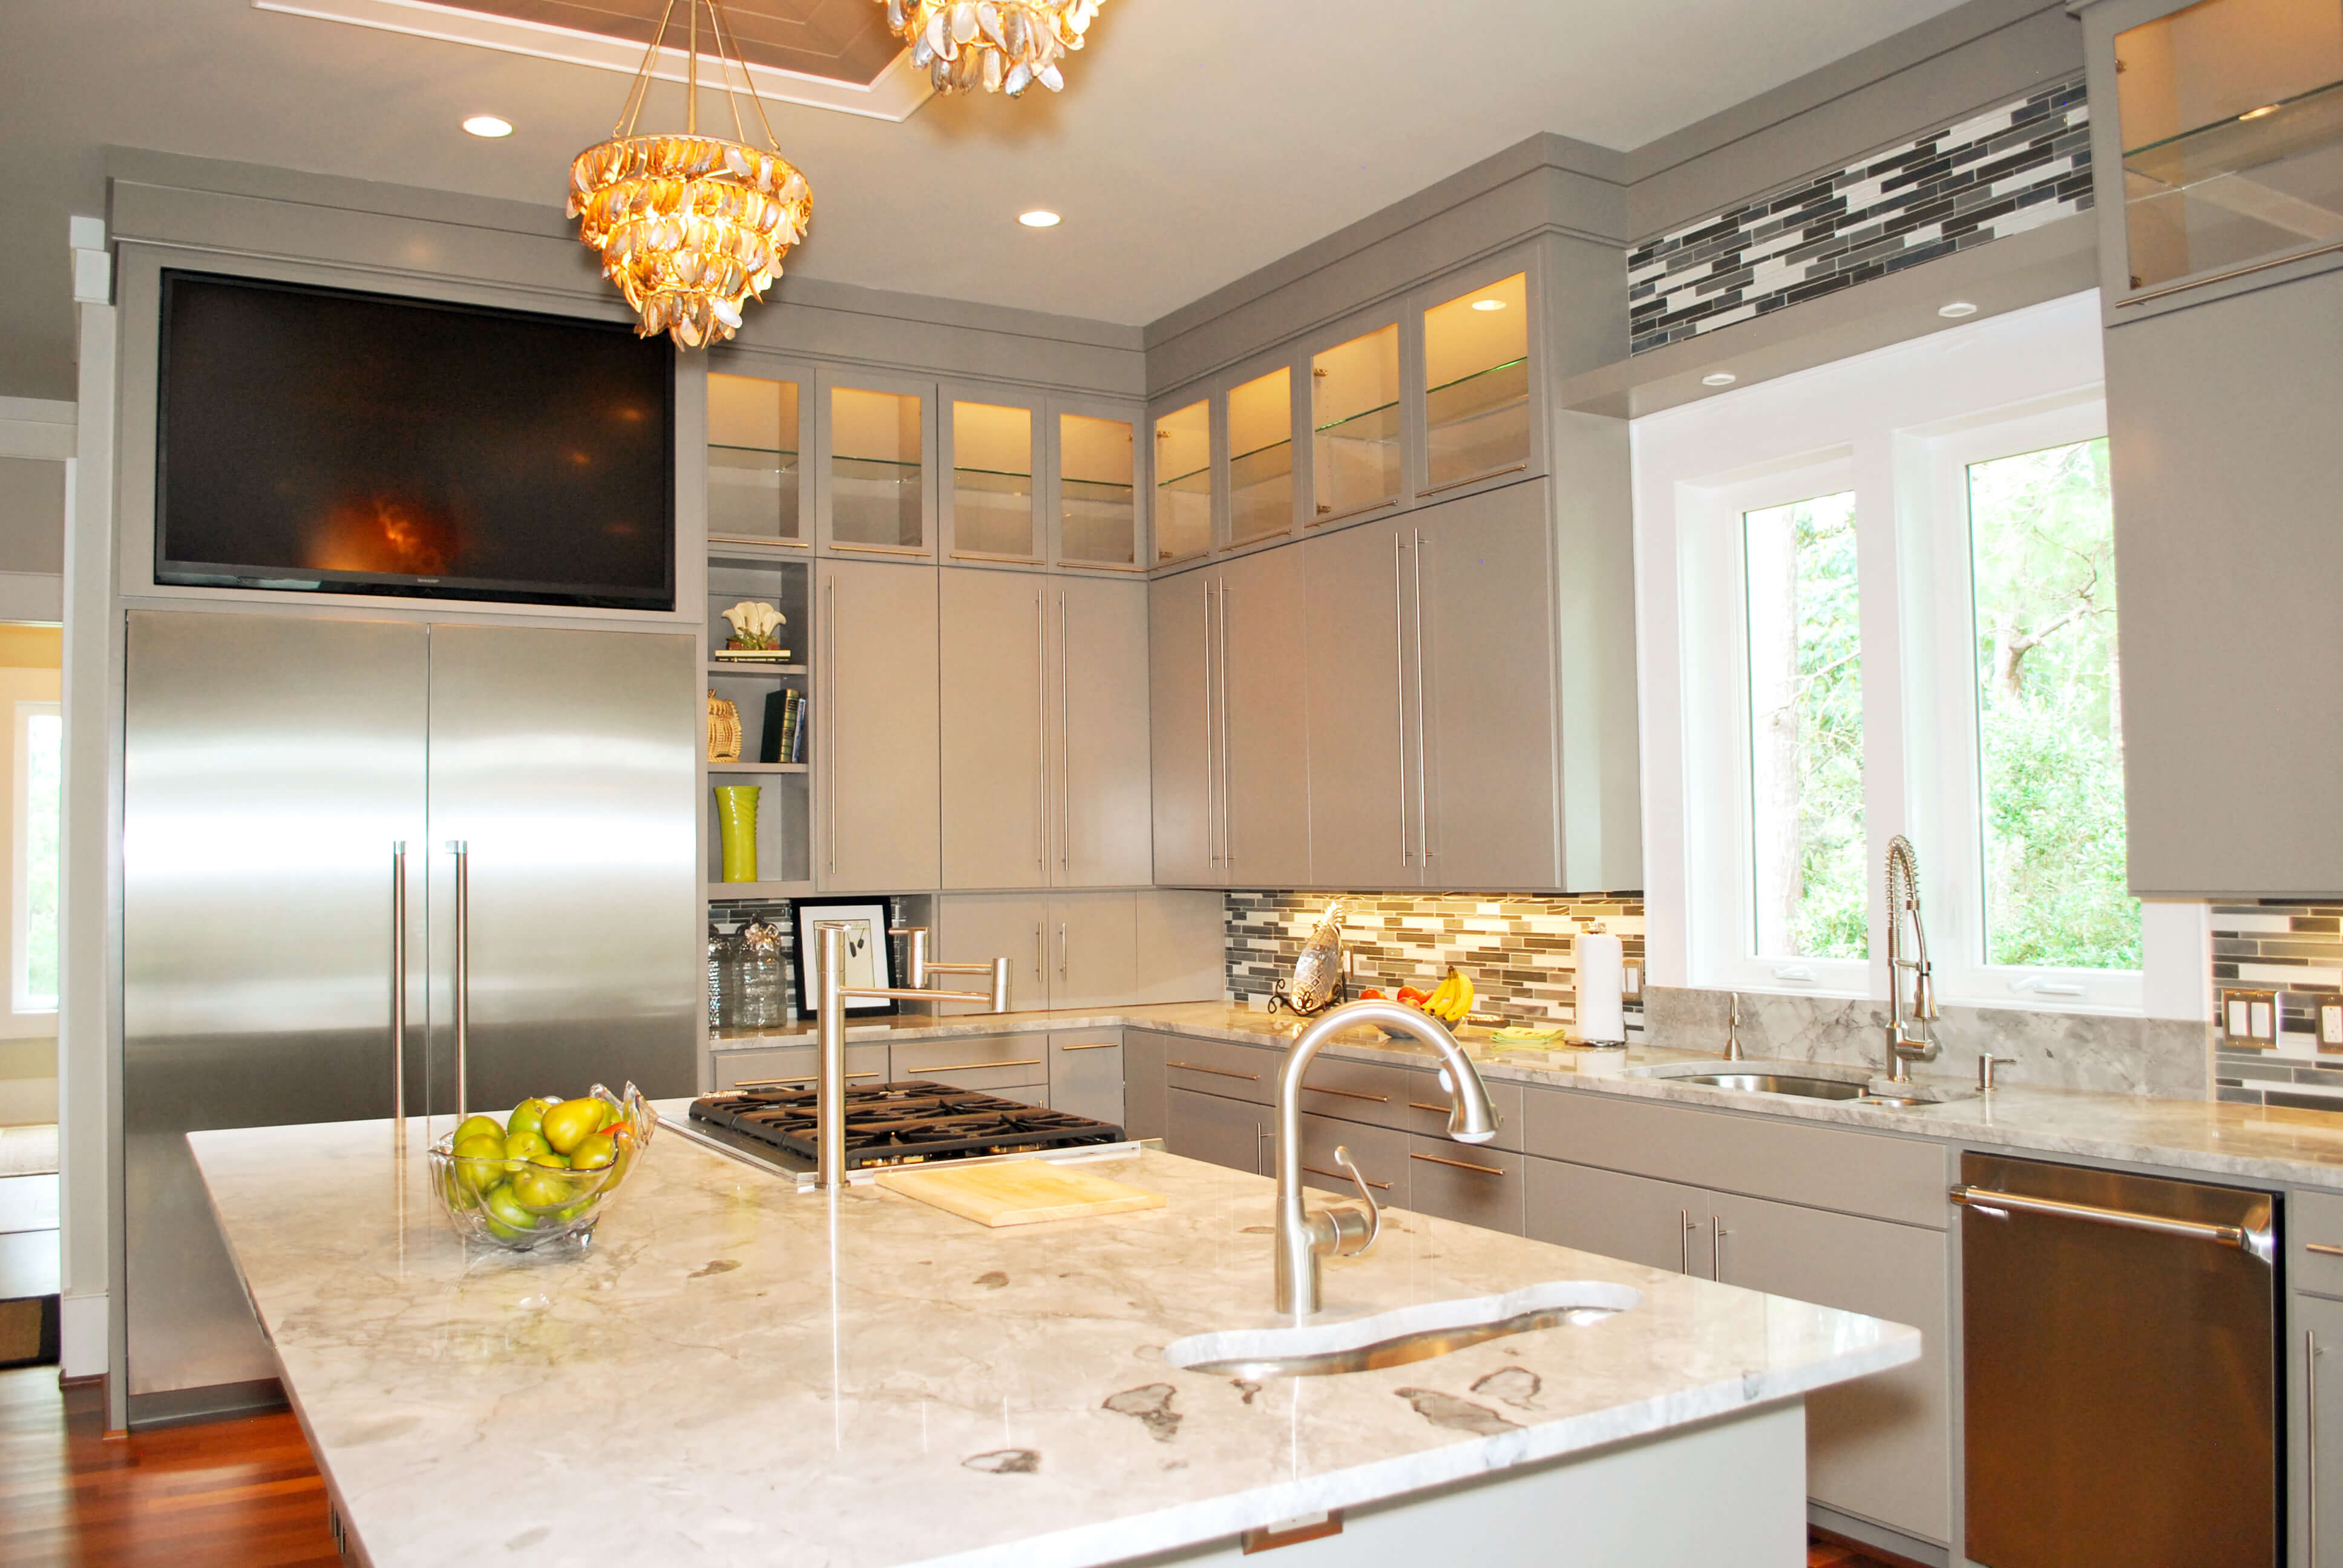 Kitchen features minimalist cabinetry with metal handles, marble top counters, tile backsplash and interior lit upper glass cabinets.